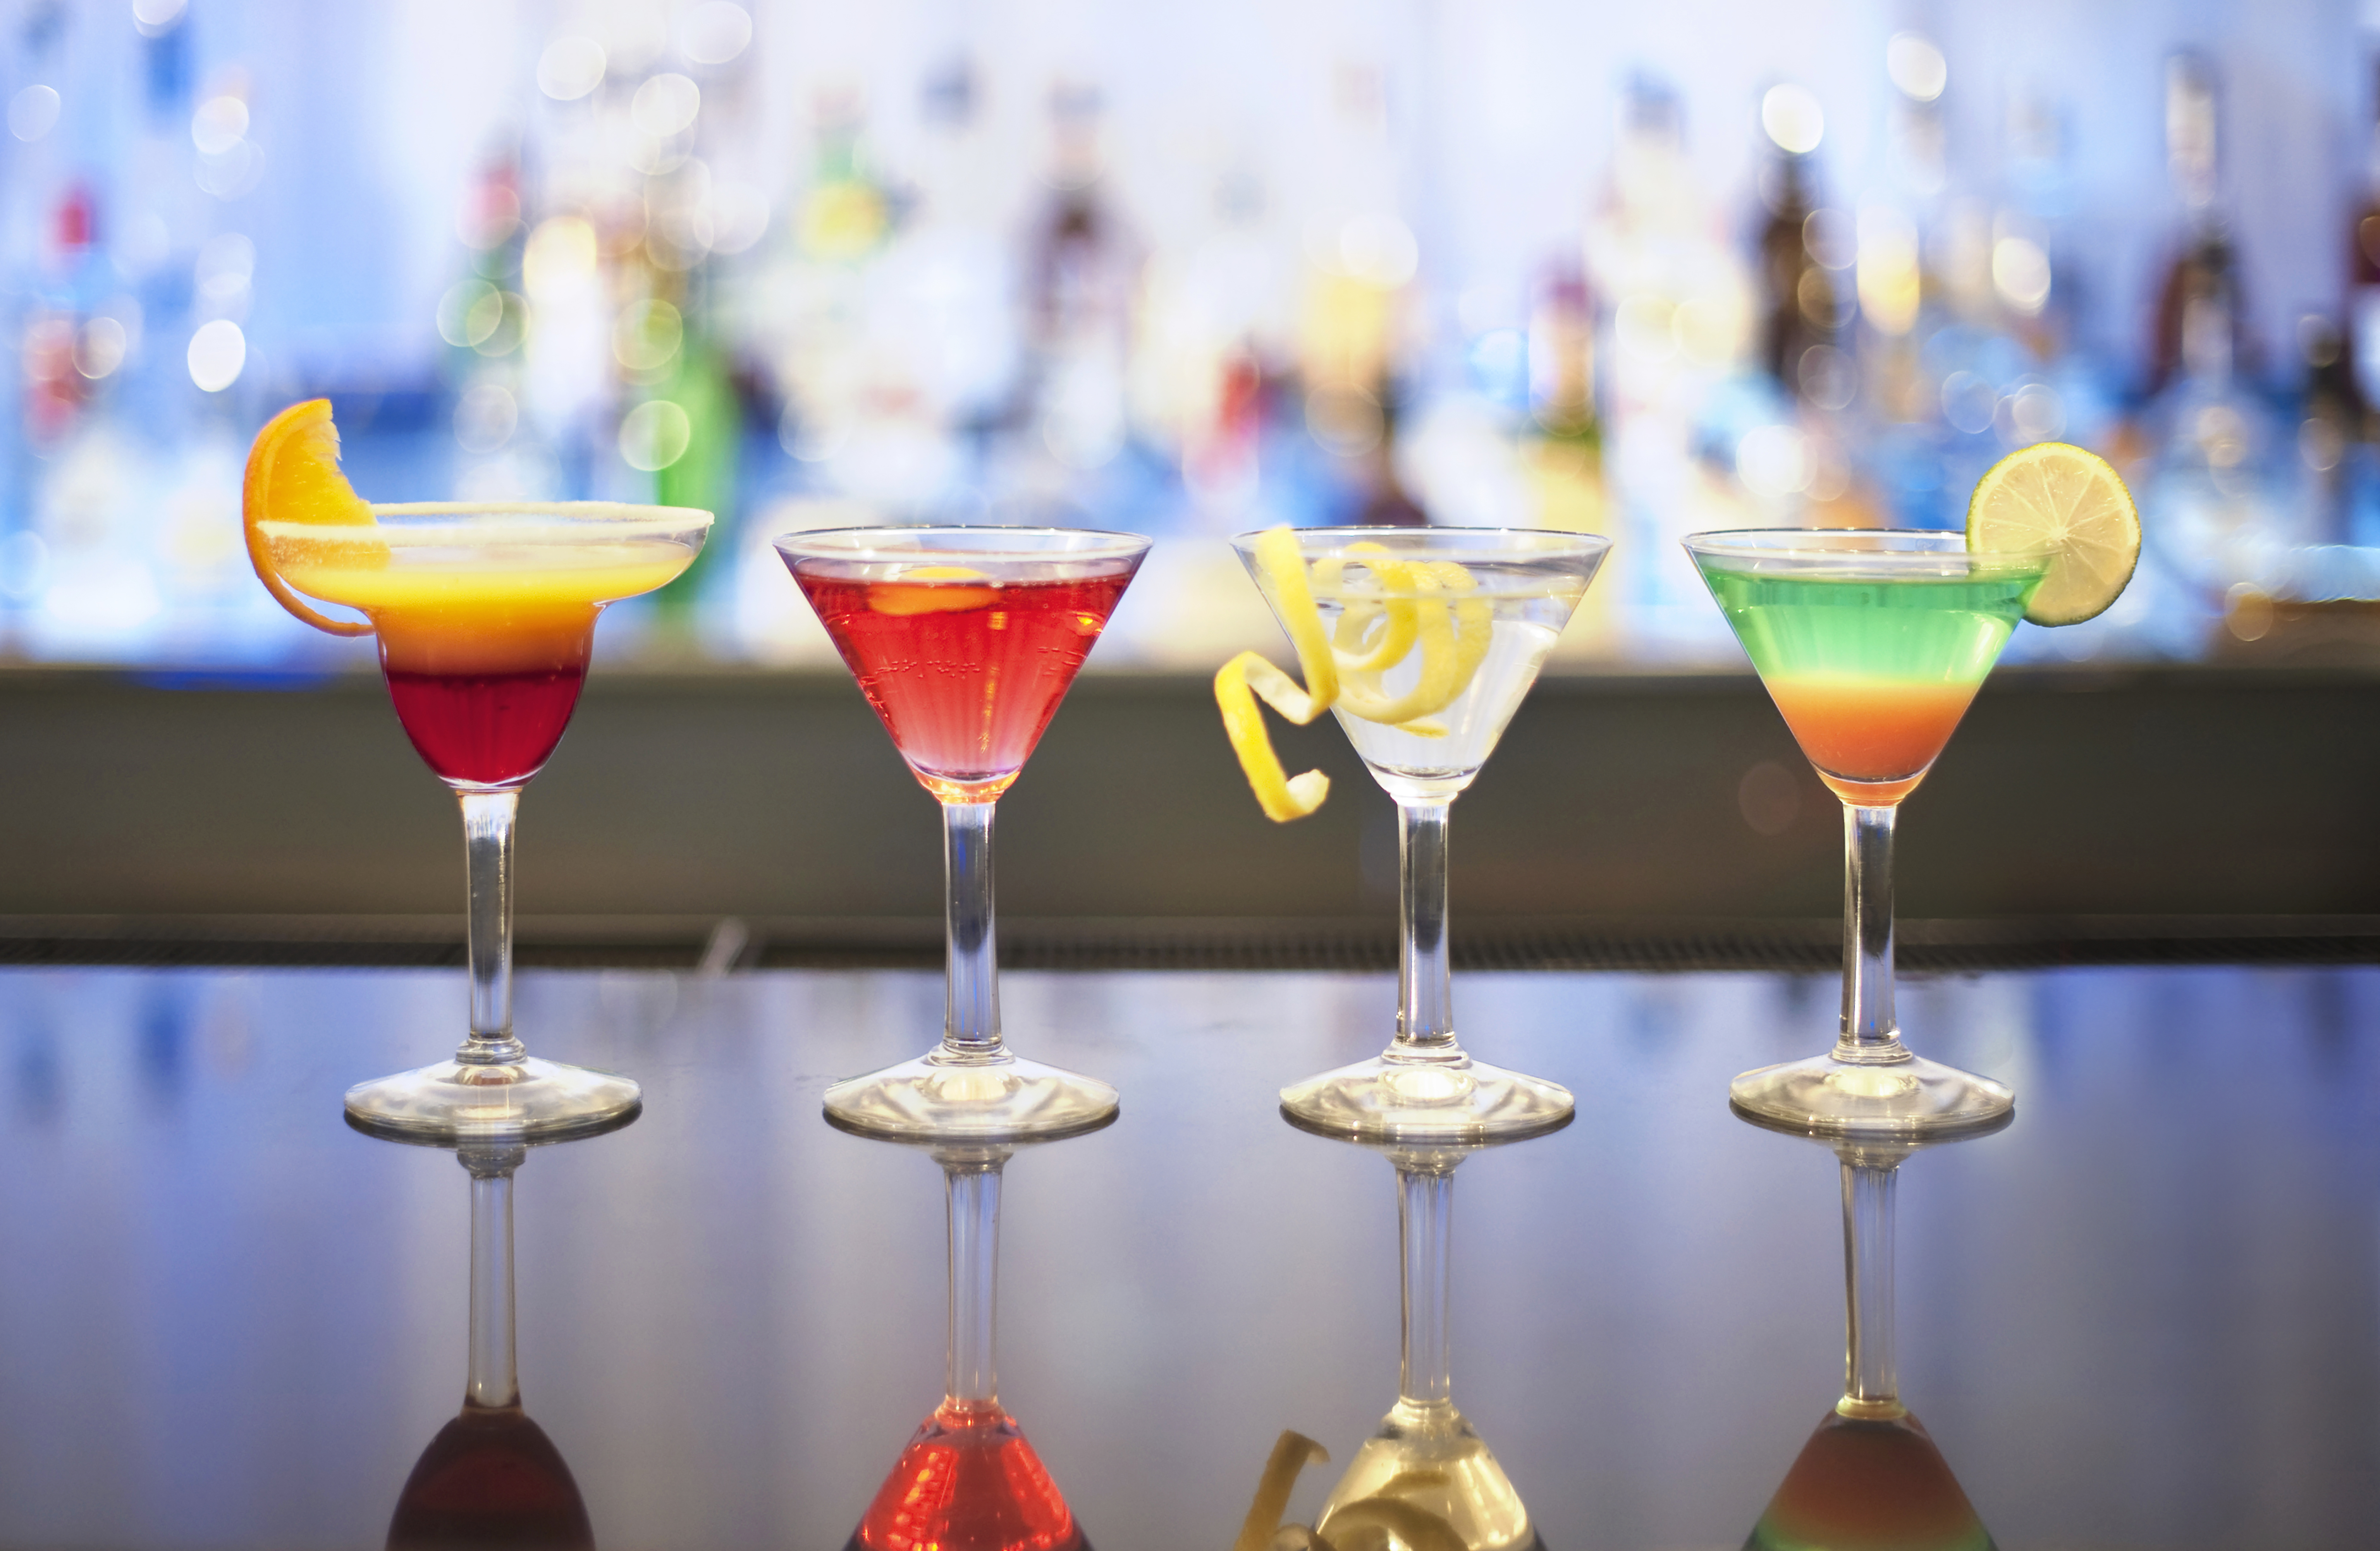 Learn how to make your own cocktails in Lockdown Two with our expert's top tips